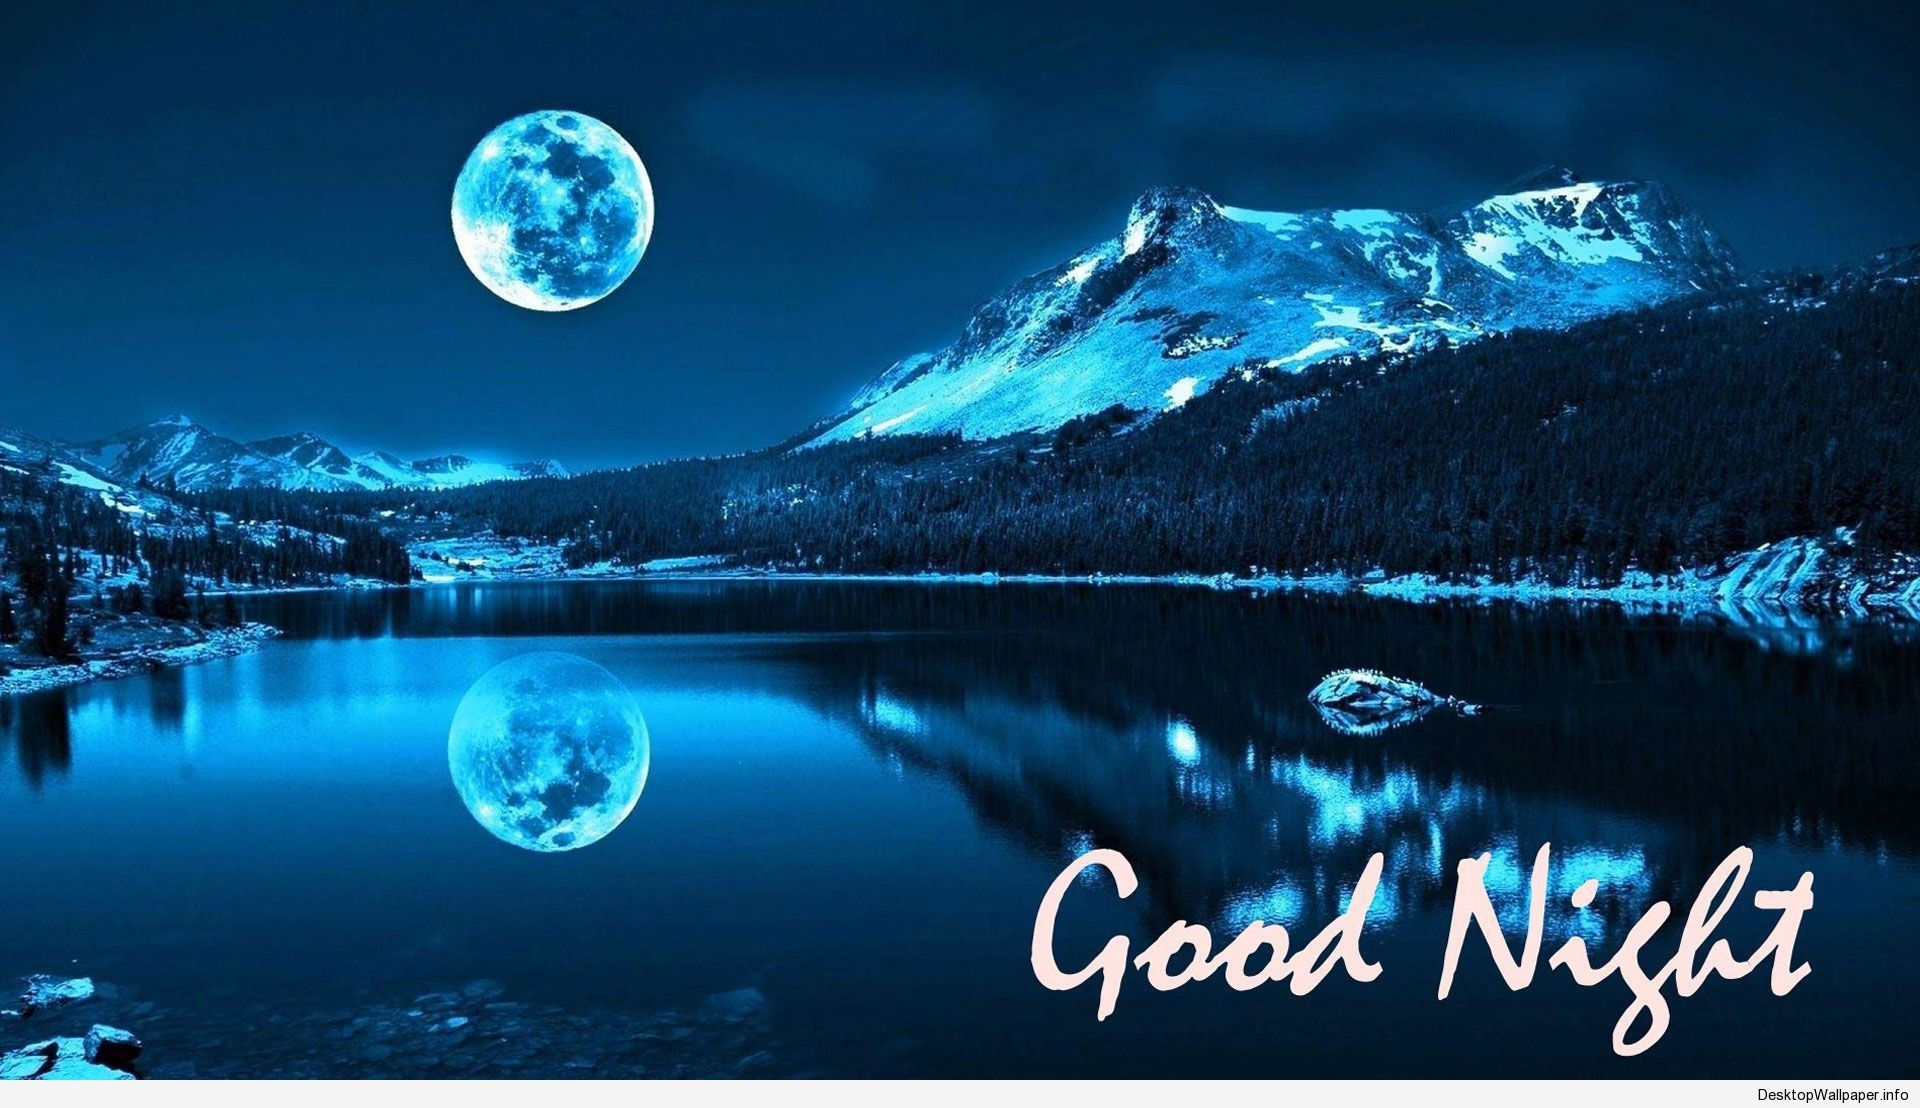 Good night wallpaper full hd download httpdesktopwallpaperfo good night wallpaper full hd download httpdesktopwallpaperfogood voltagebd Images